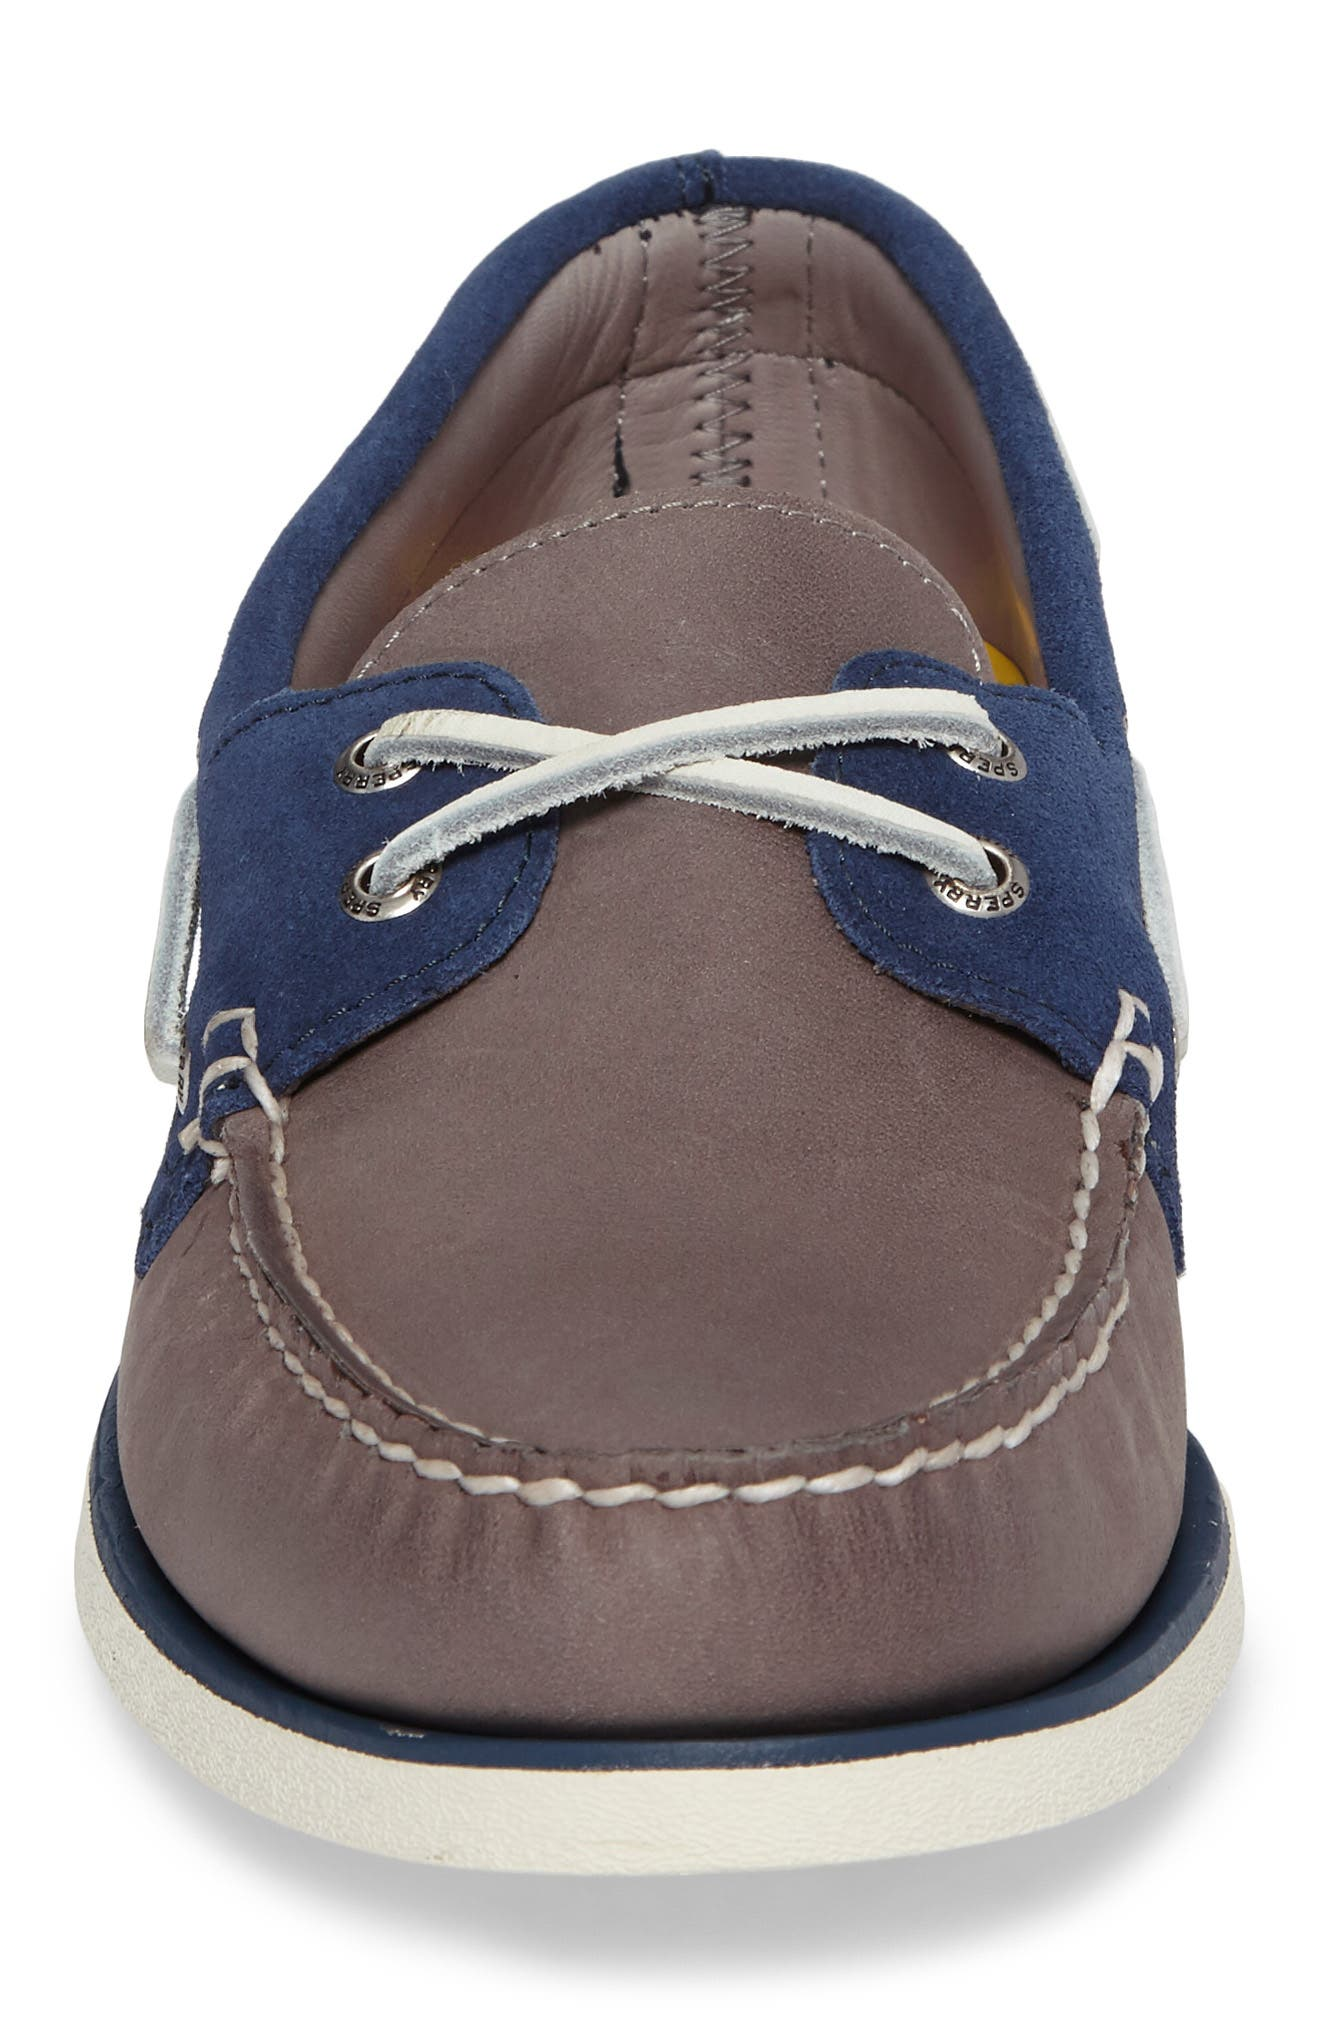 Gold Cup Authentic Original Boat Shoe,                             Alternate thumbnail 4, color,                             Grey/ Blue Leather